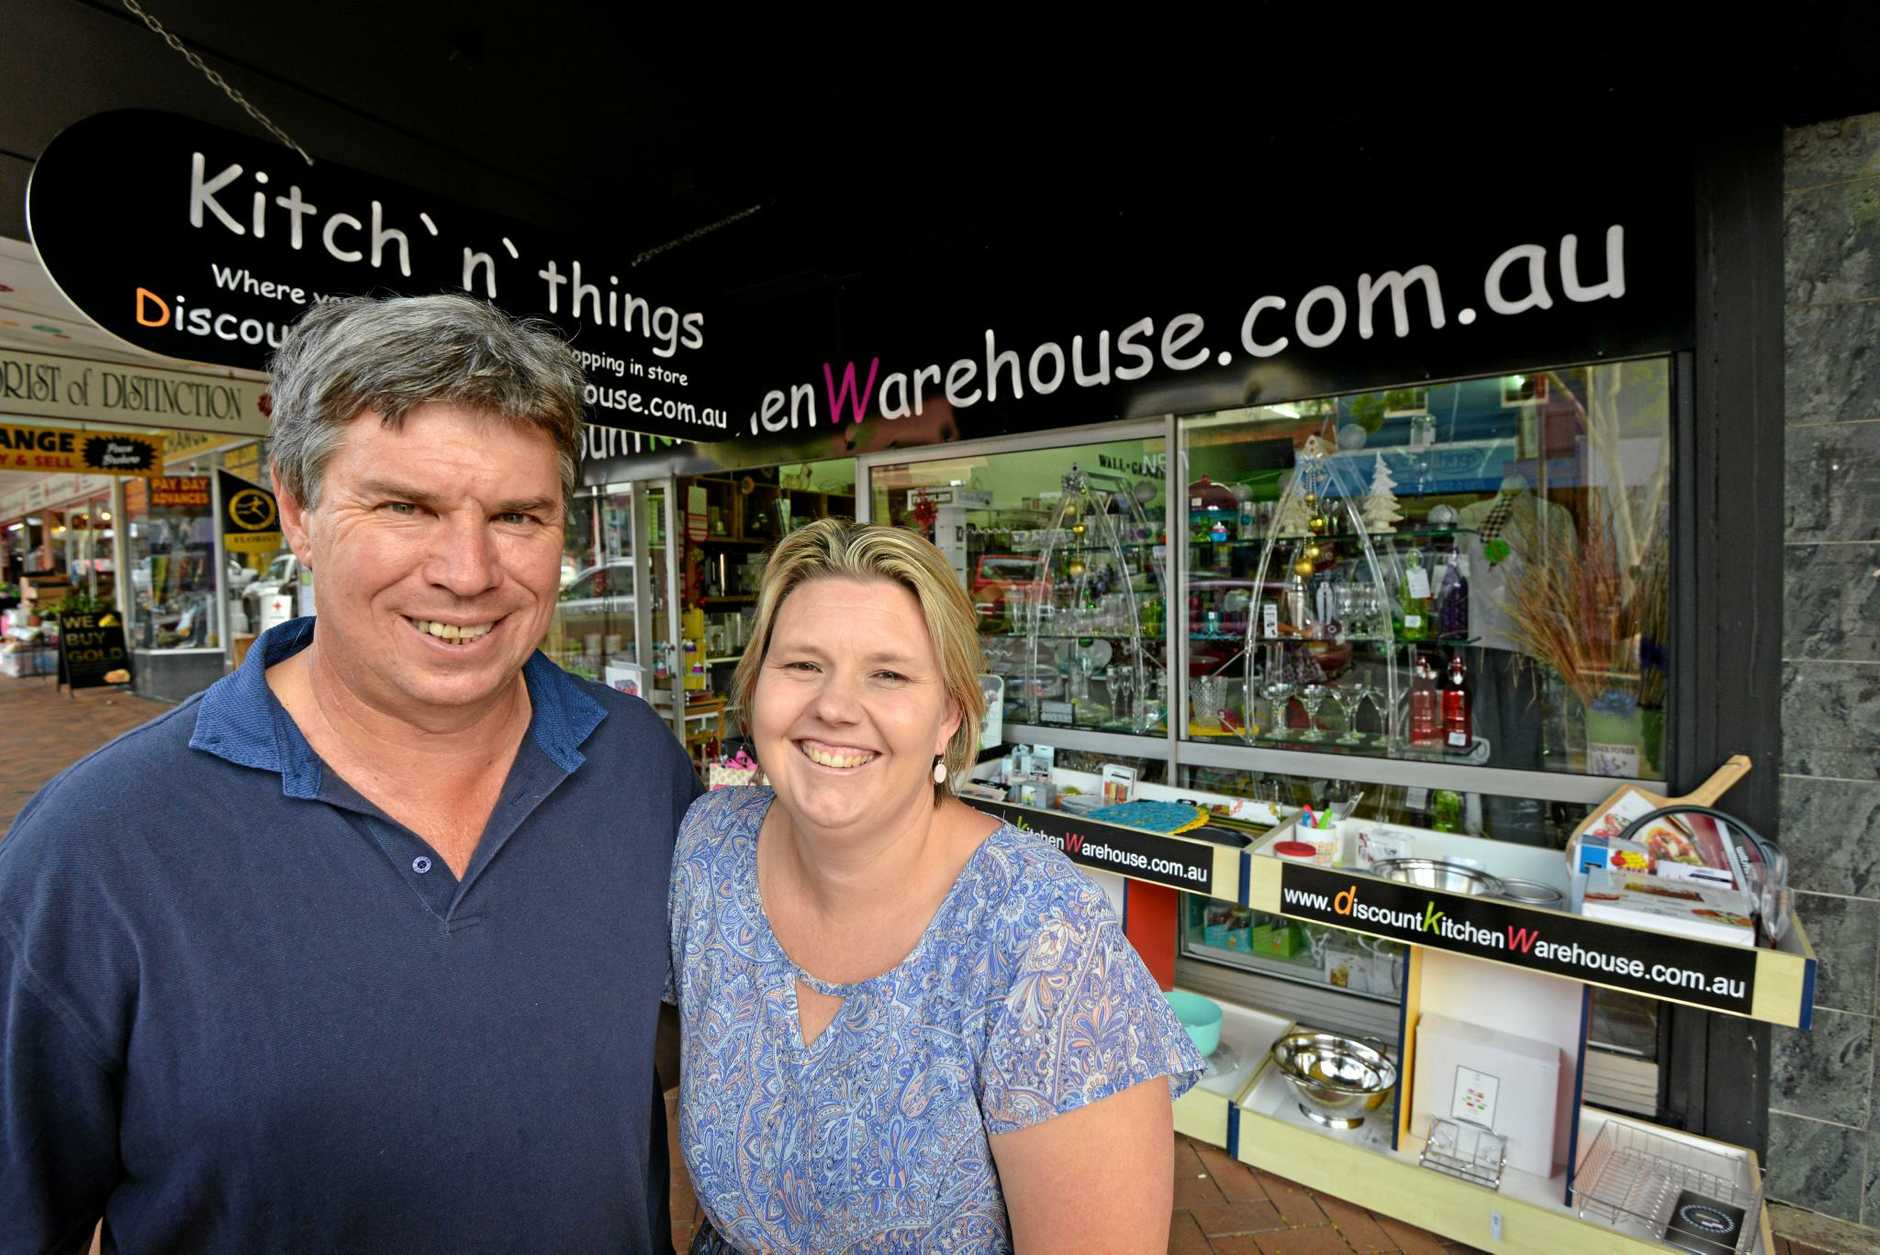 Business owners, Andrew and Elaine McIntosh of Kitch 'n' things, Mary Street, Gympie. Photo Patrick Woods / Gympie Times